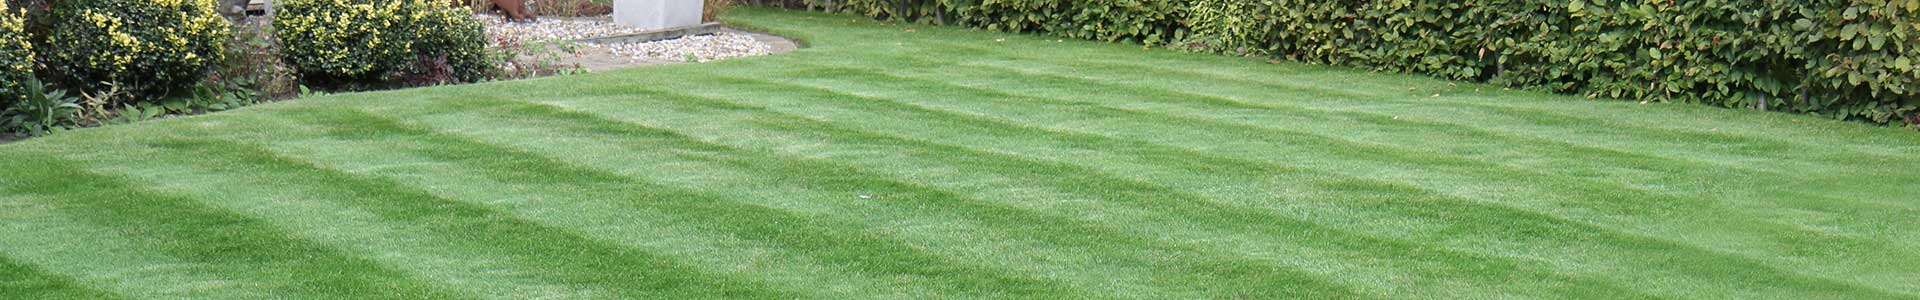 Results of Feed & Weed Lawn Treatment